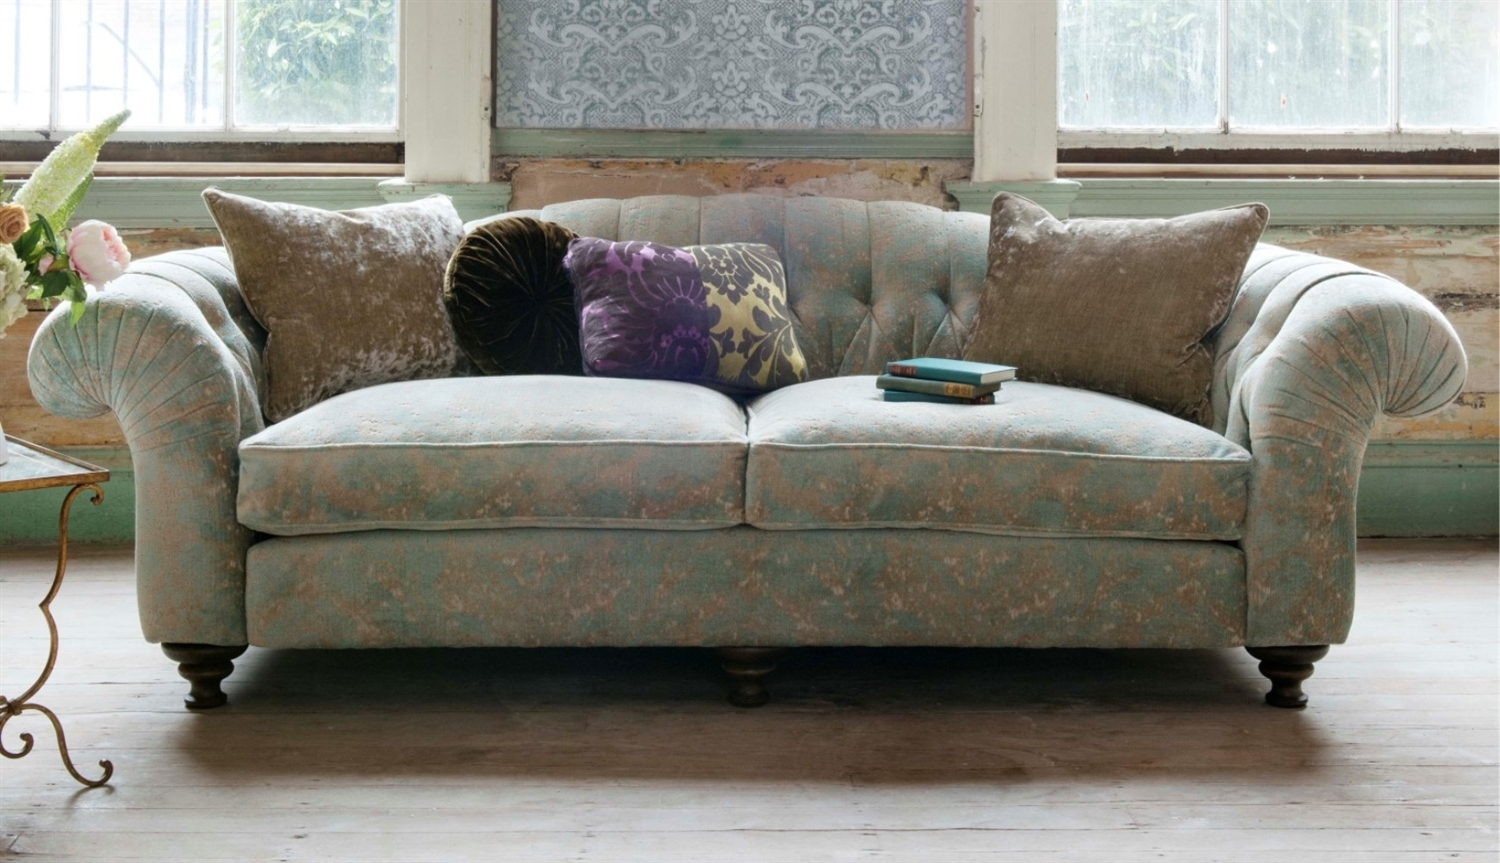 Fabric Sofas Within Popular Sofas – Luxury Handcrafted British Fabric Sofas (View 6 of 15)